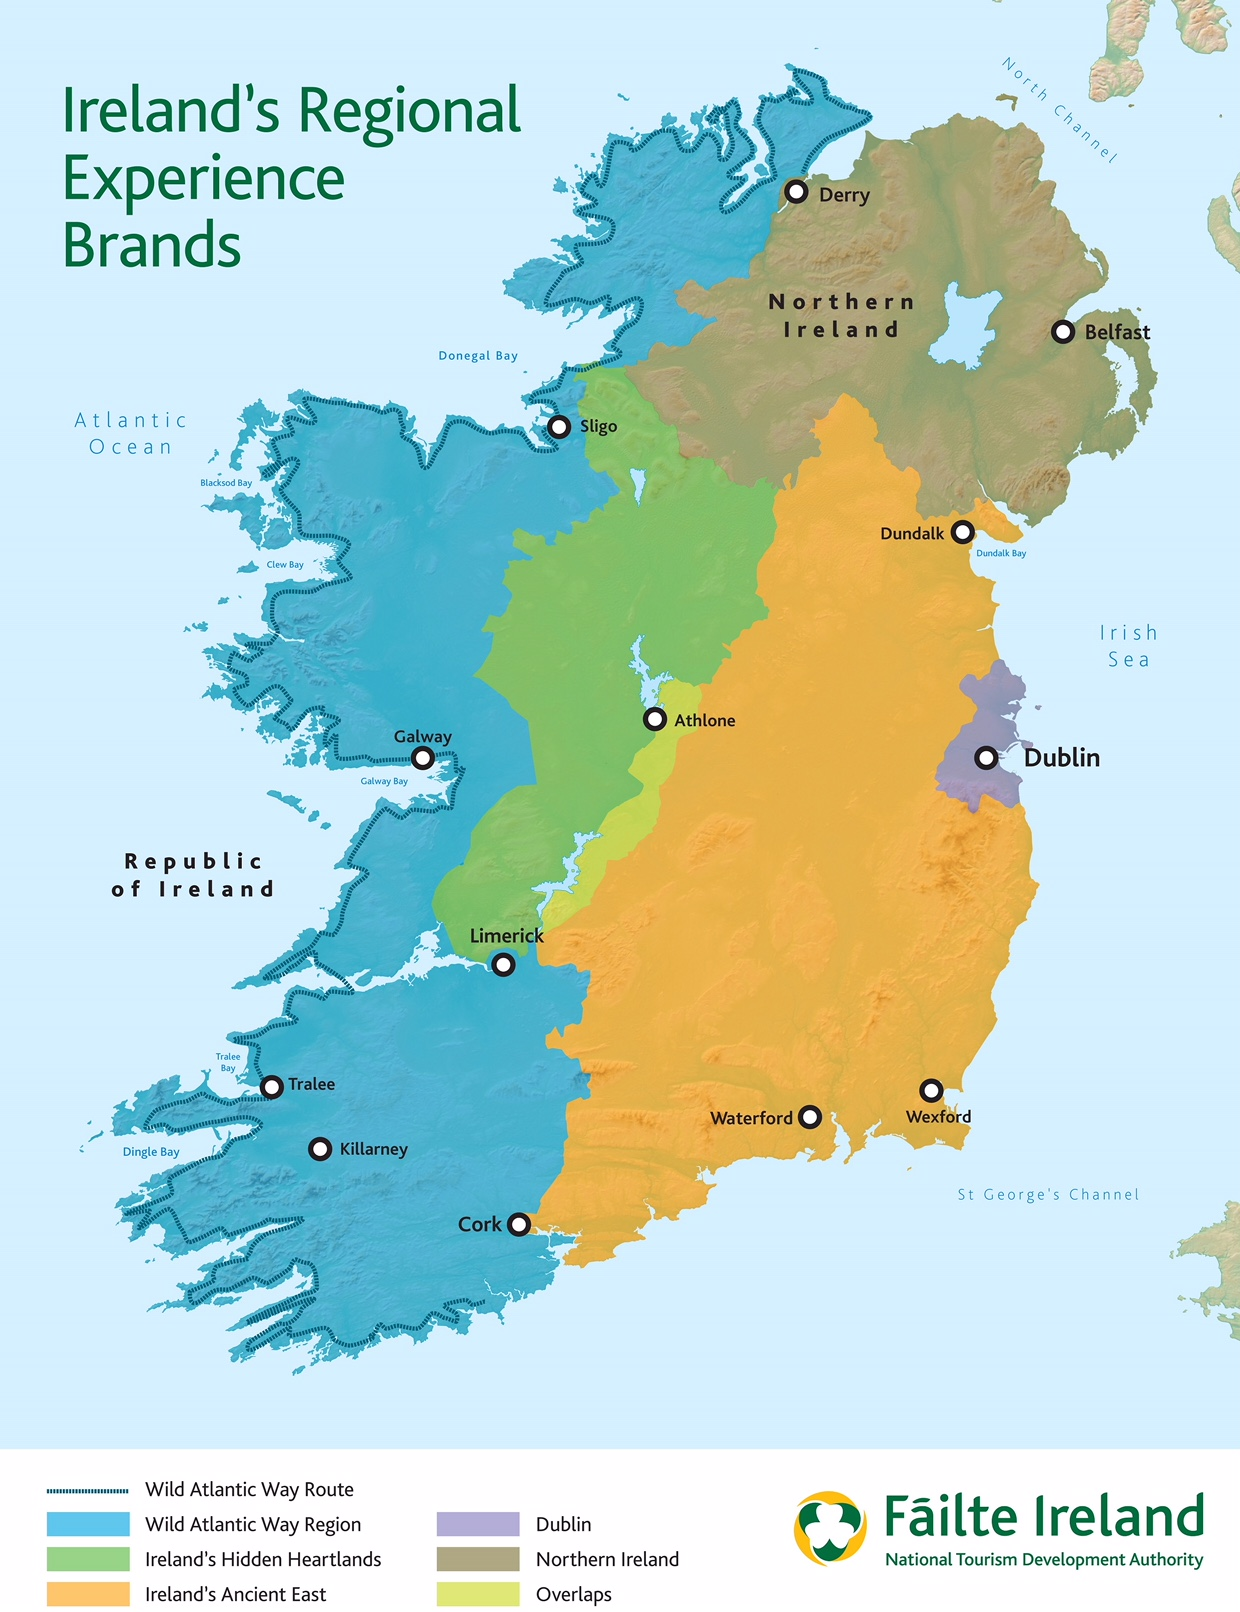 Dingle Map Of Ireland.The Midlands Long Awaited Tourism Brand Has Finally Been Revealed